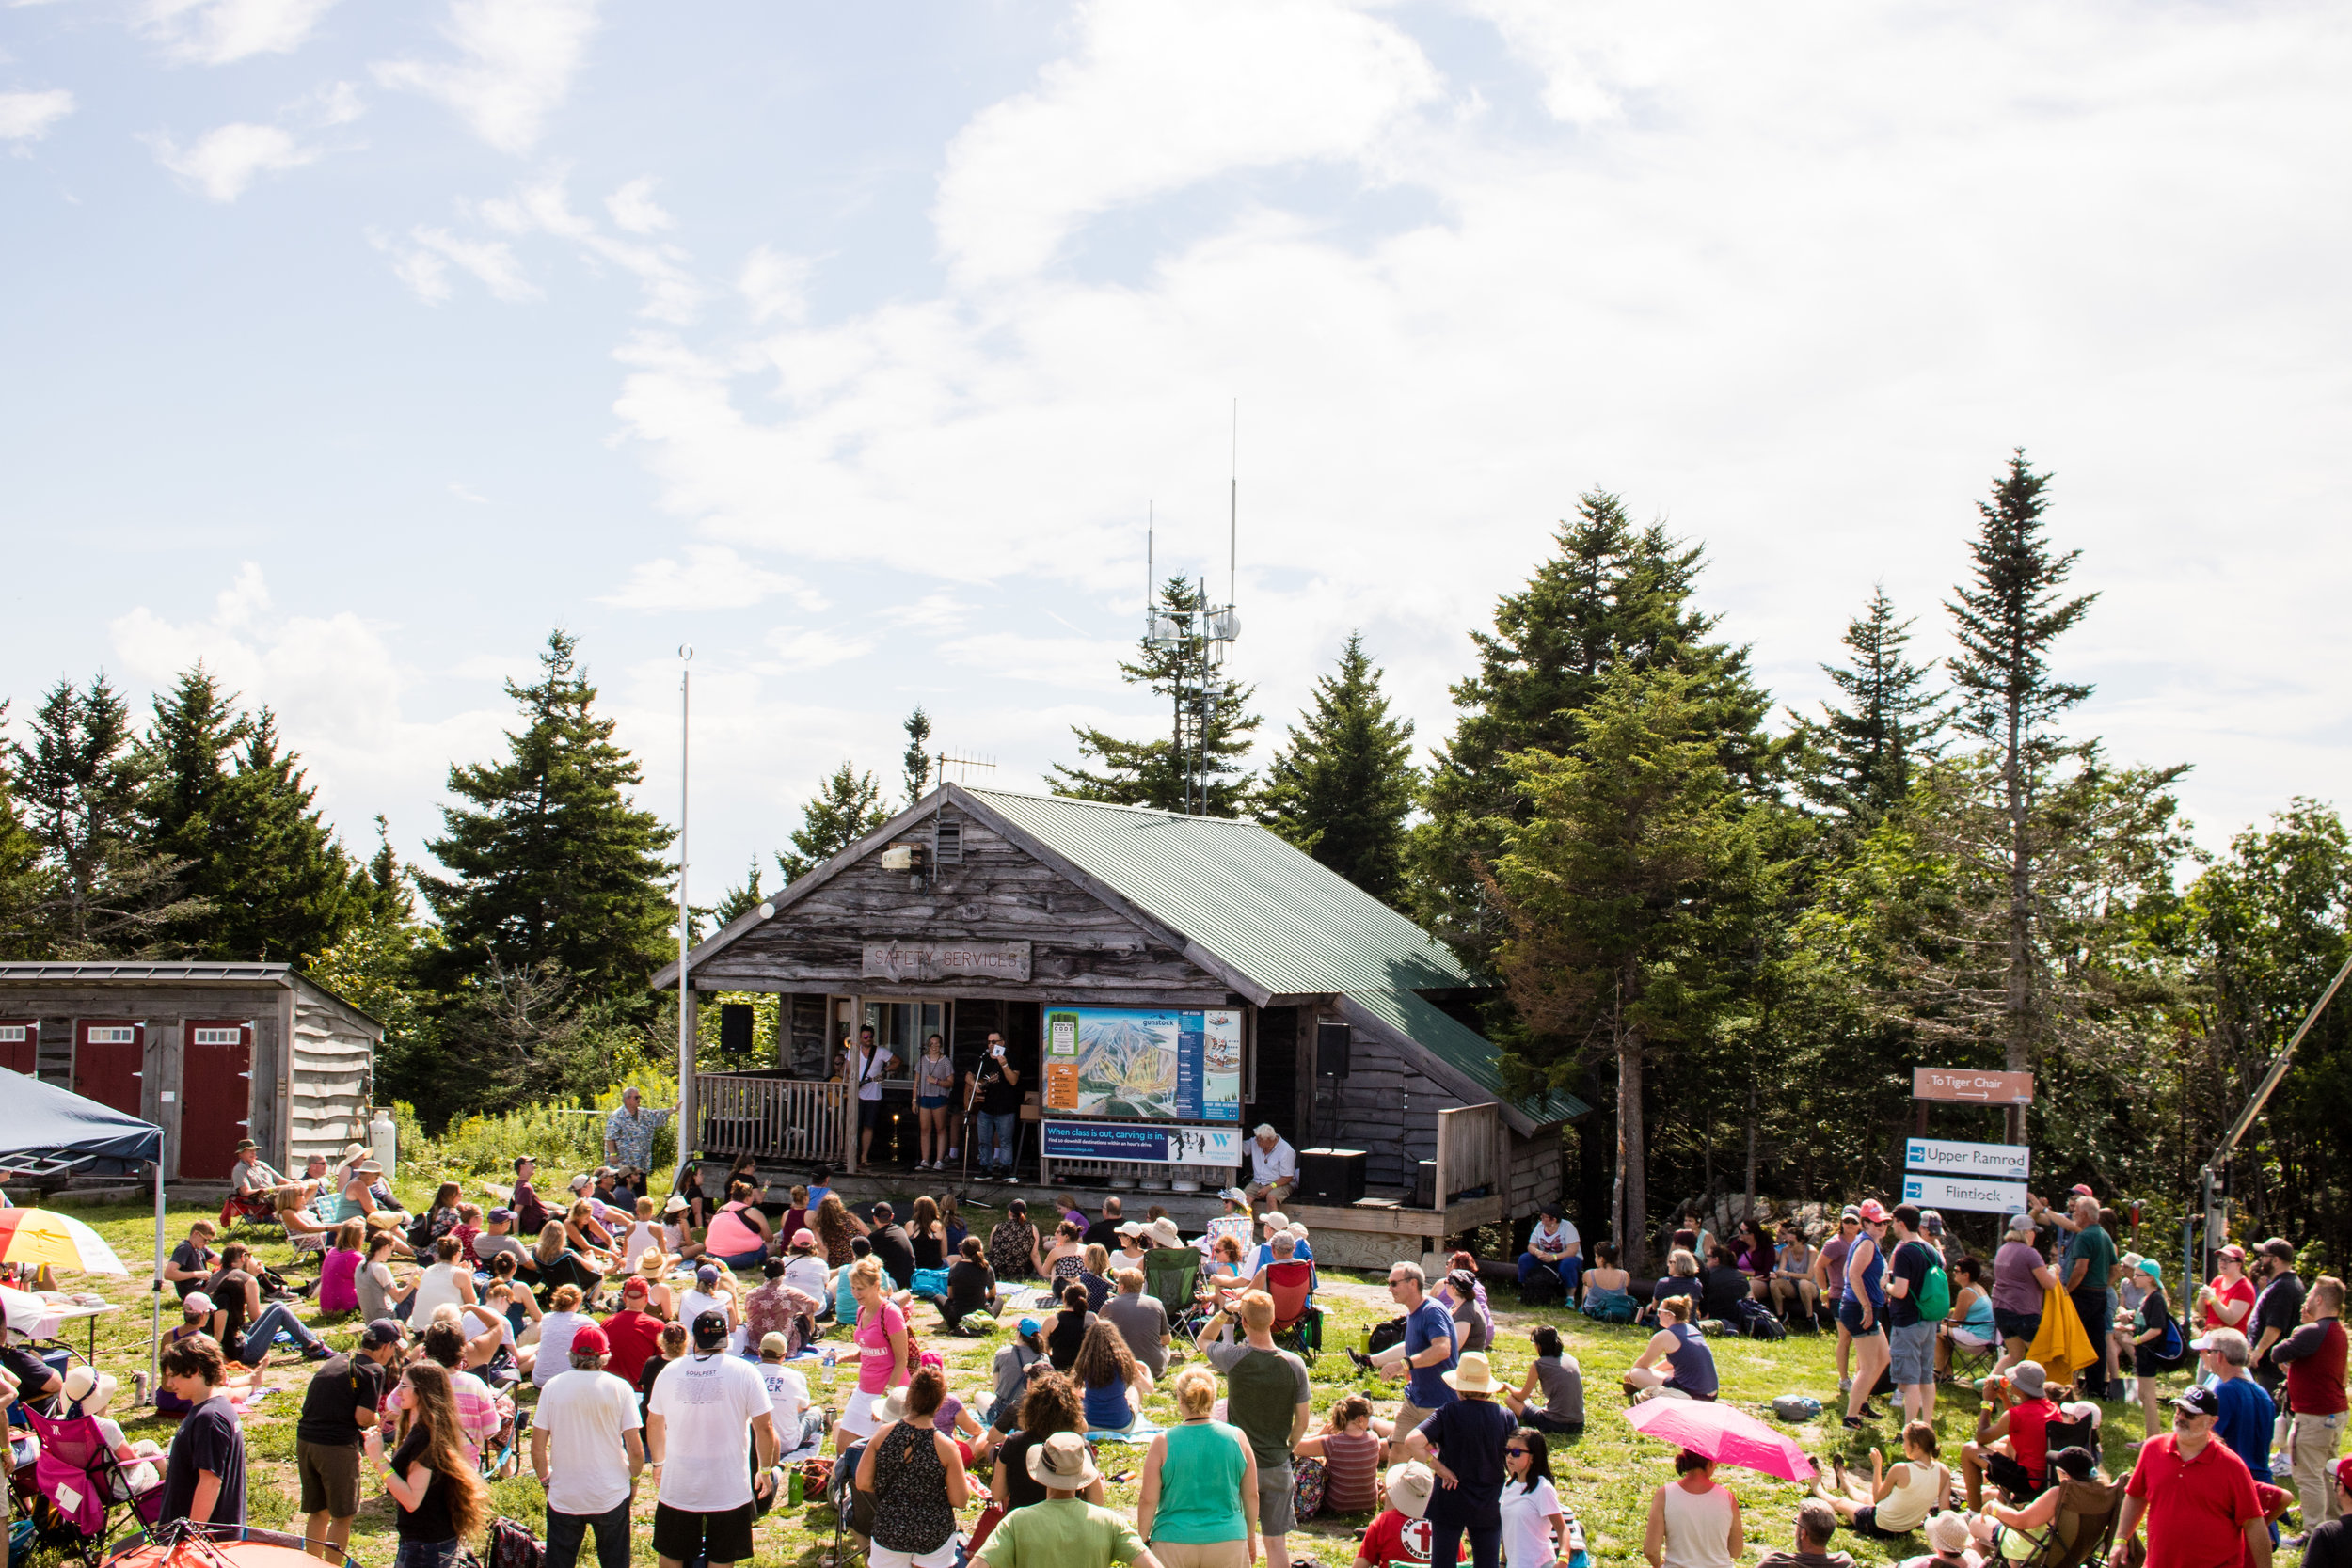 Take a scenic chair-lift ride to our acoustic stage and surround yourself with a panoramic view.